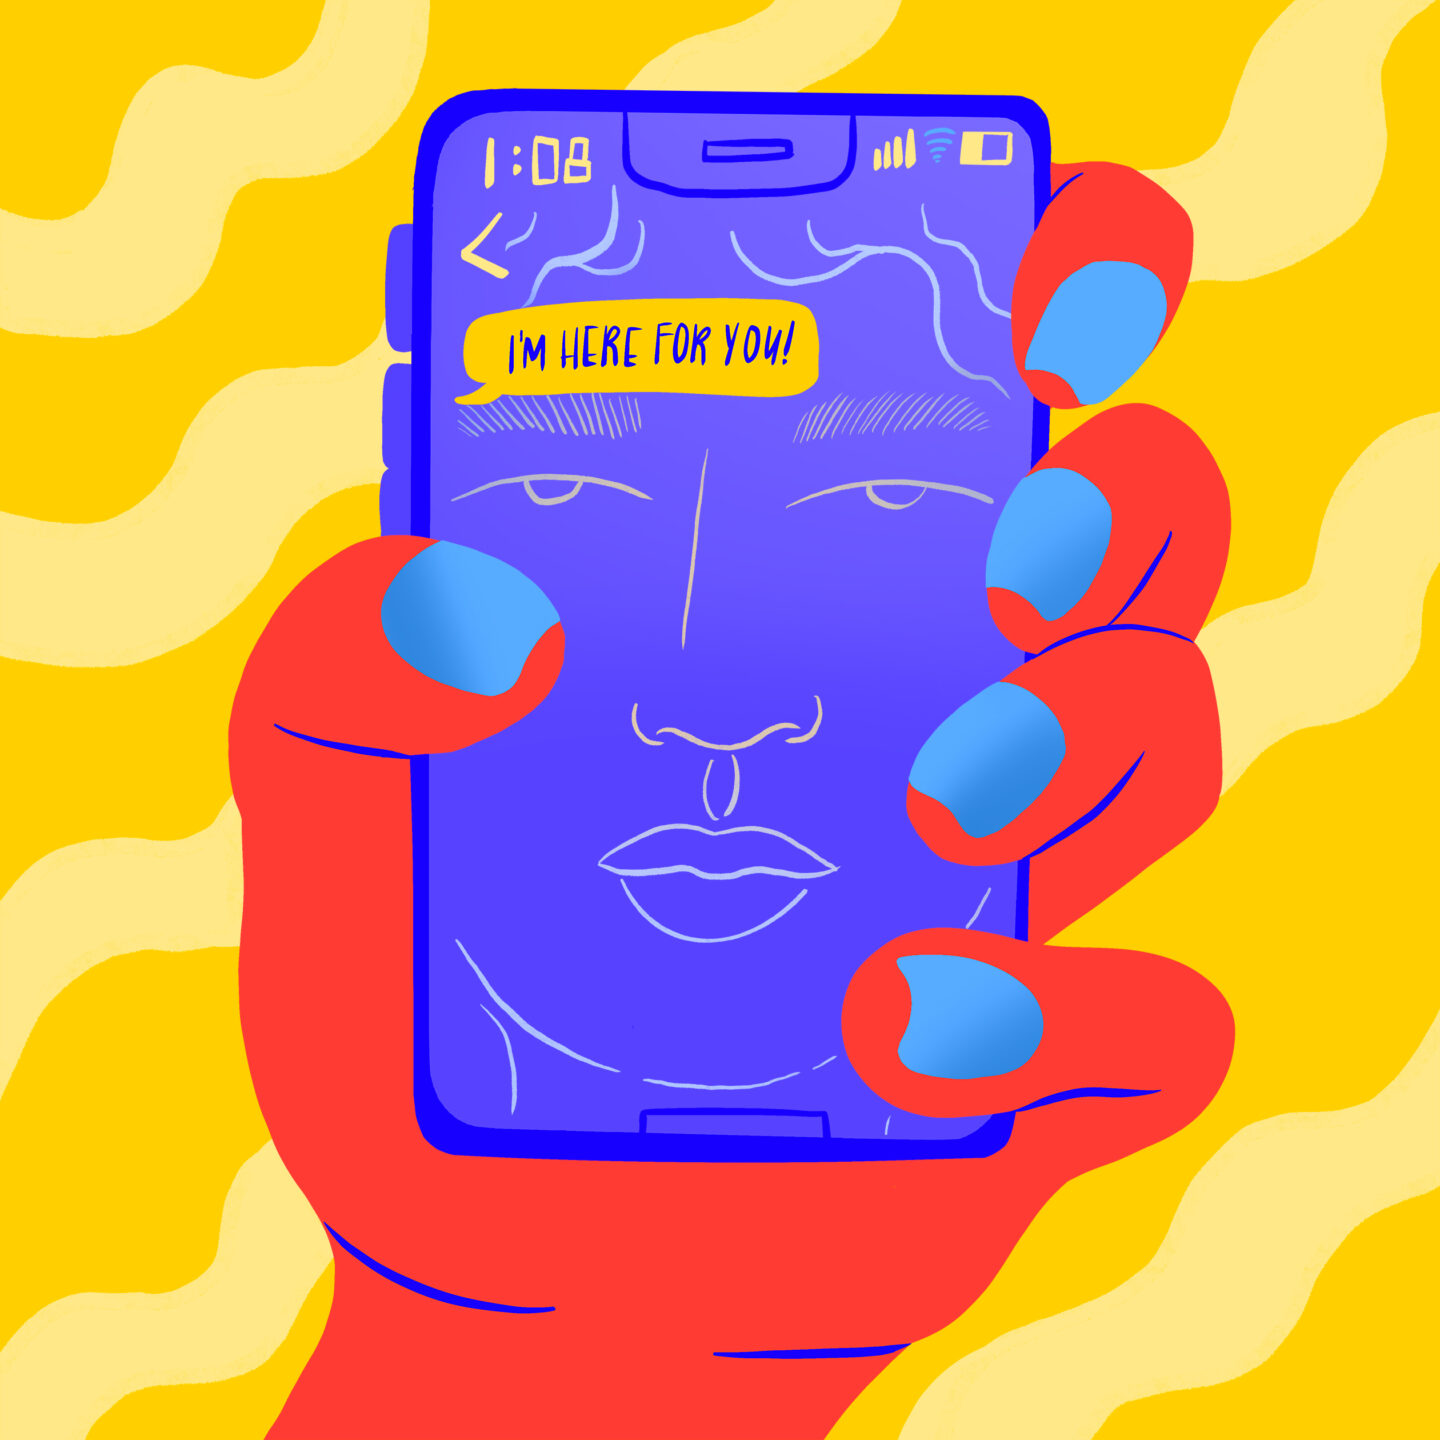 """Illustration of a hand holding a phone, showing an incoming text that says, """"I'm here for you!"""" above the reflection of the person's face"""